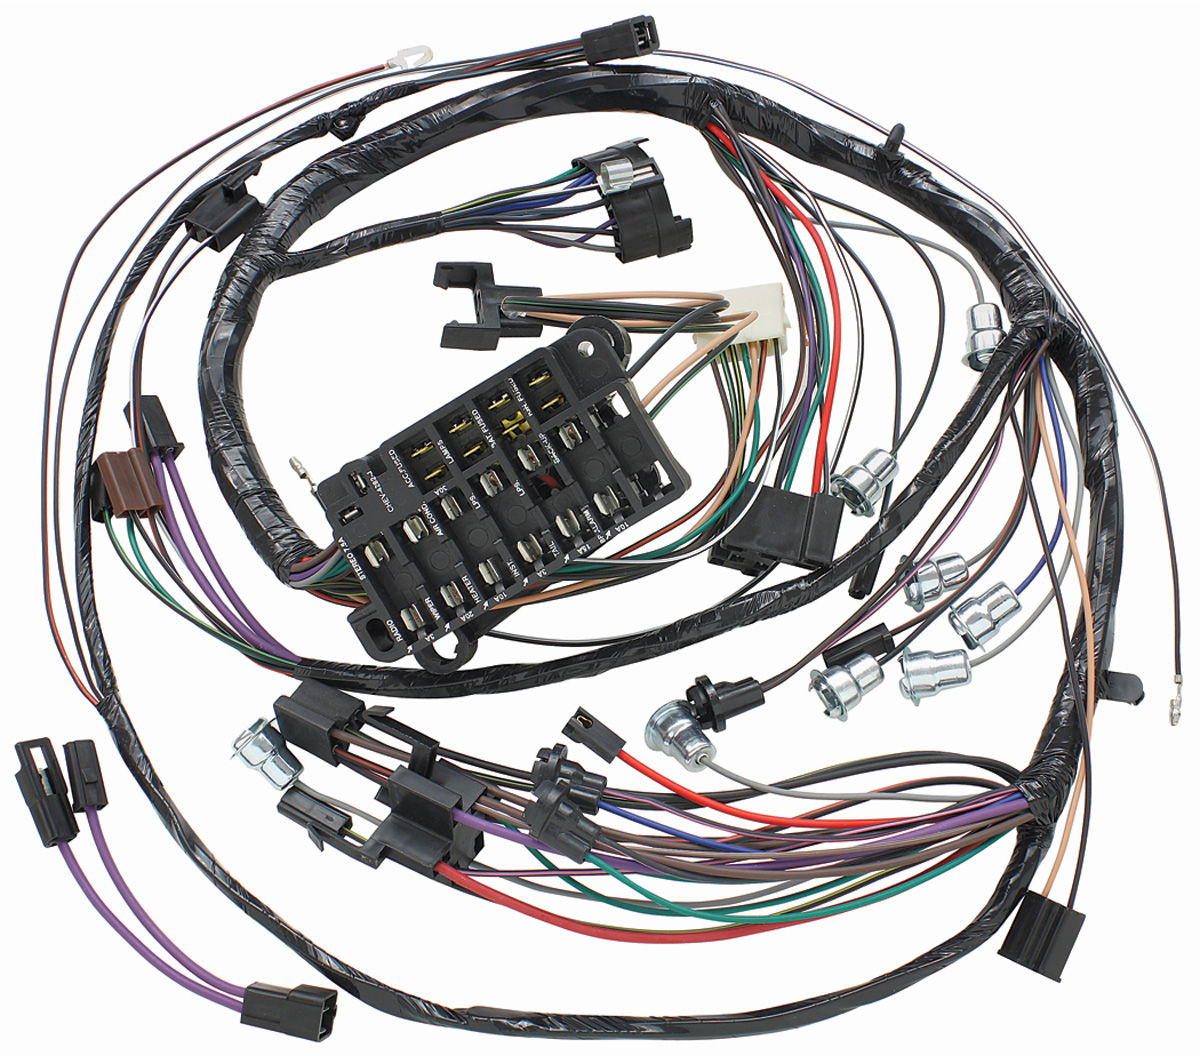 small resolution of 1971 el camino dash instrument panel harness all sweep gauge type